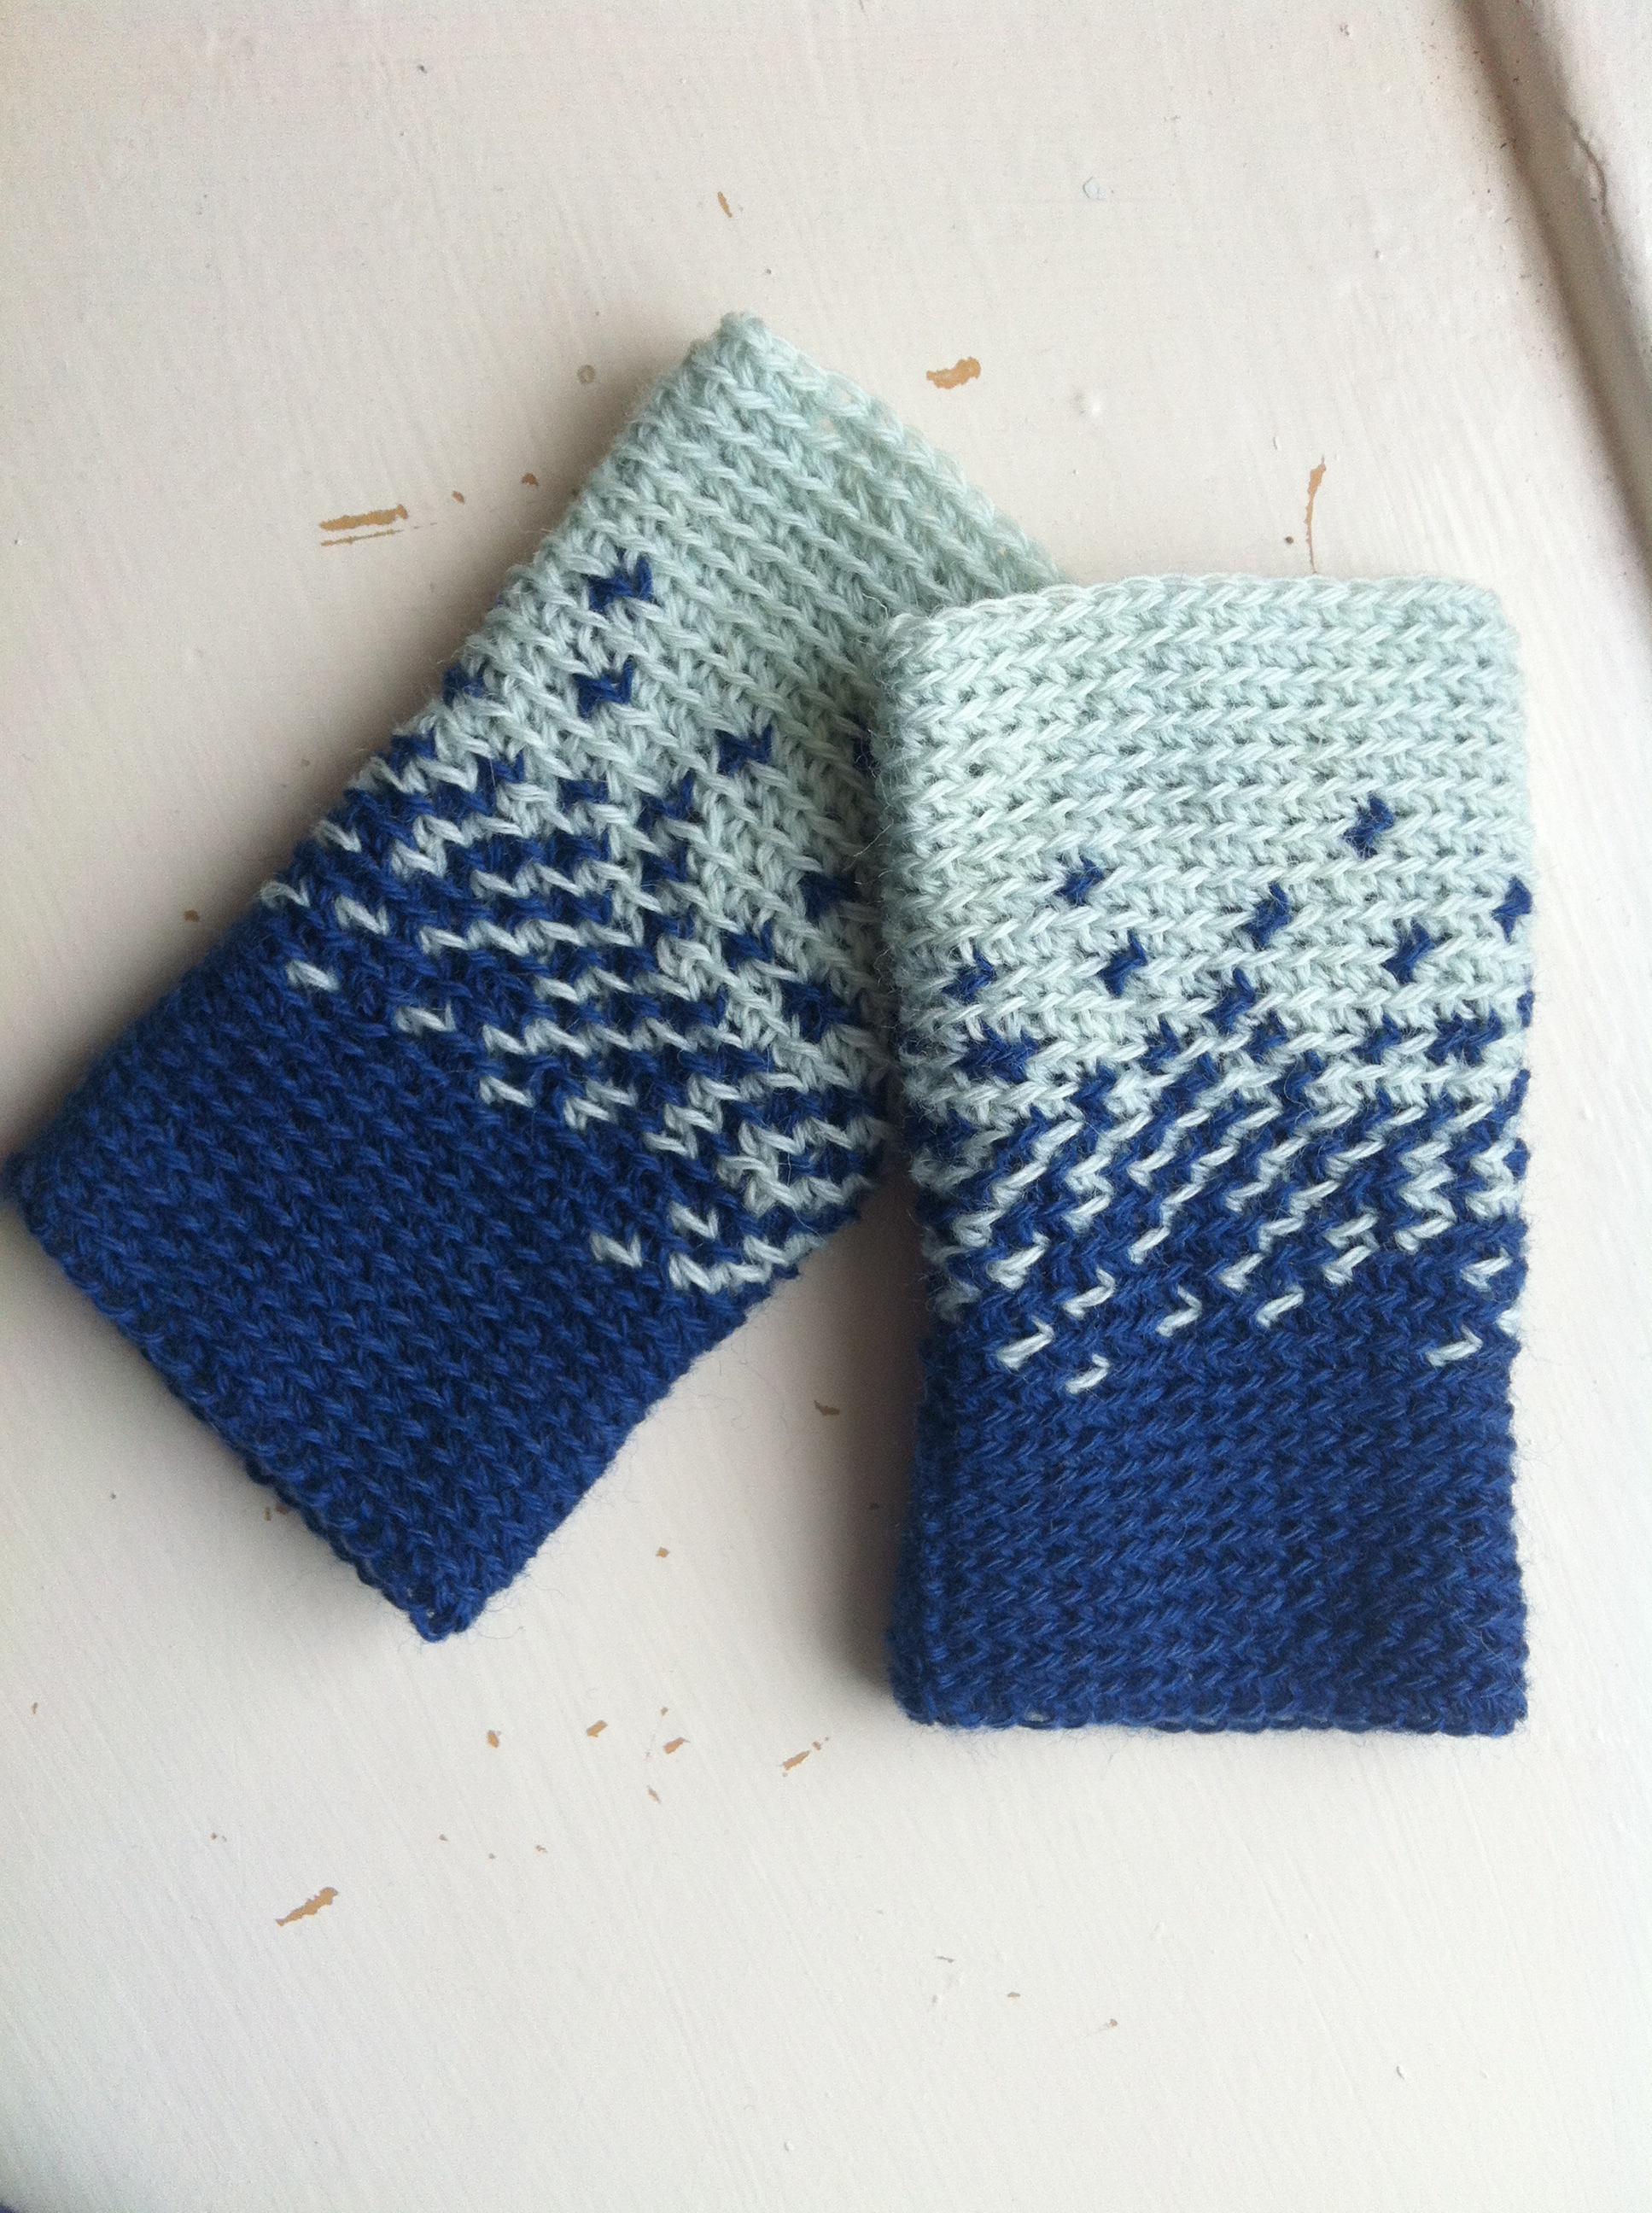 Free pattern night to day wrist warmers a crochet journey night to day wrist warmers img1679 bankloansurffo Image collections